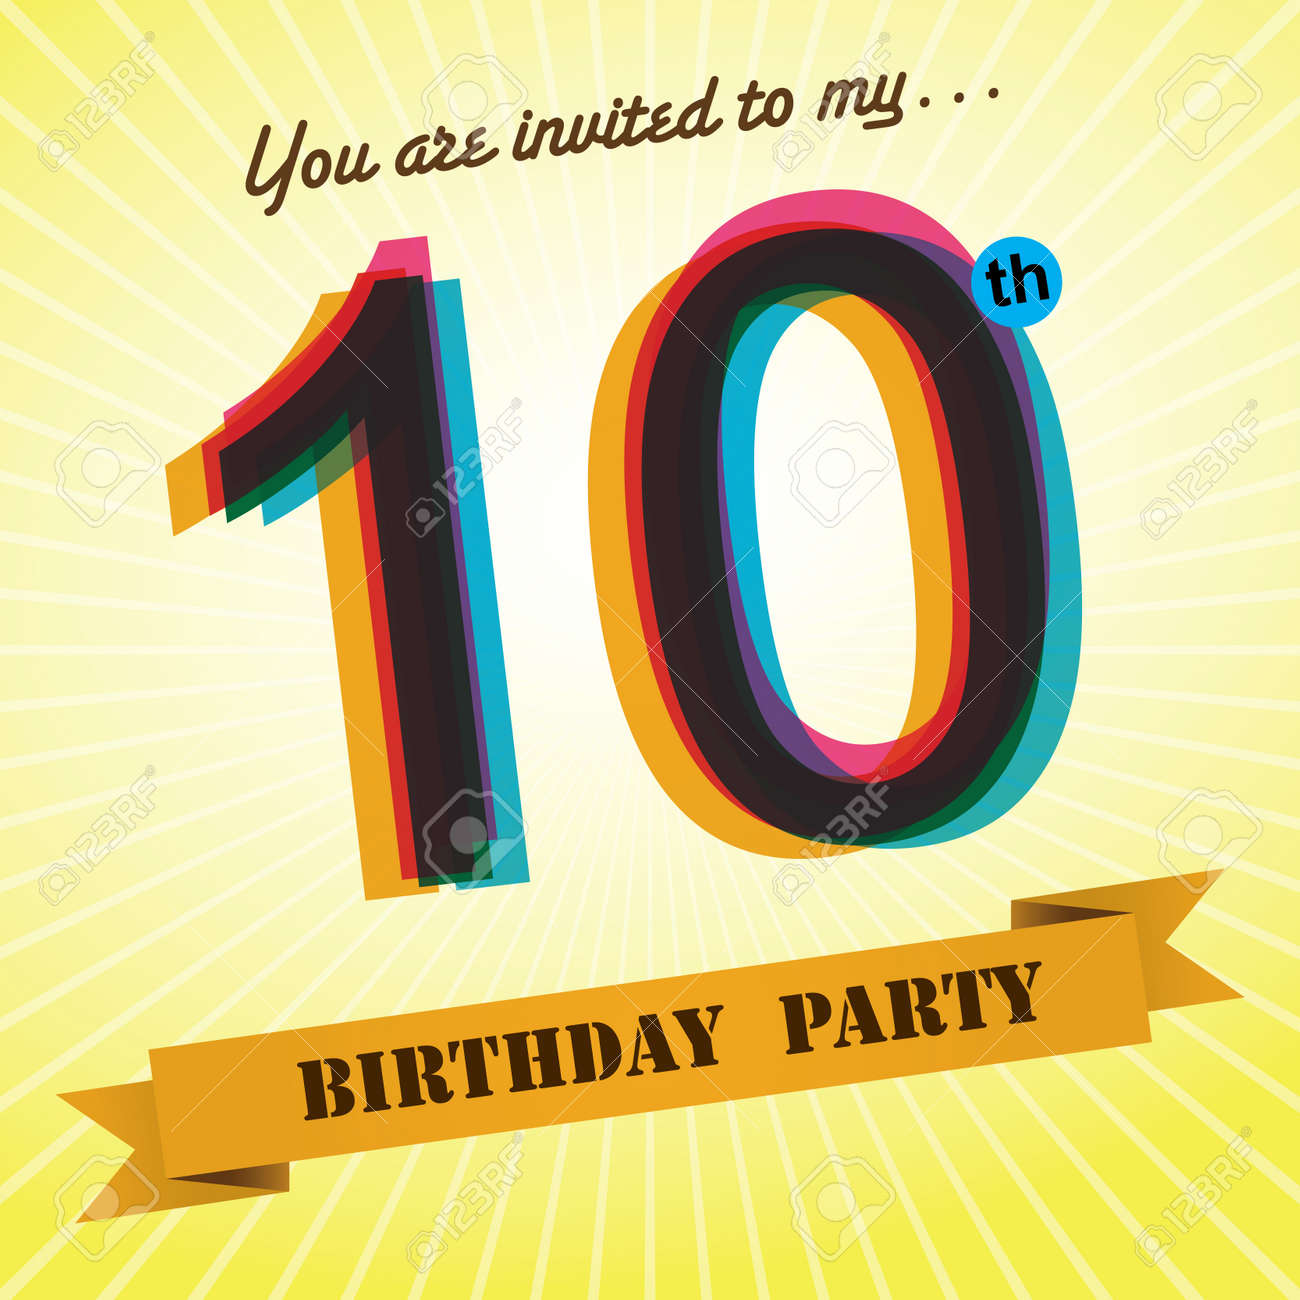 10th Birthday Party Invite Template Design Retro Style